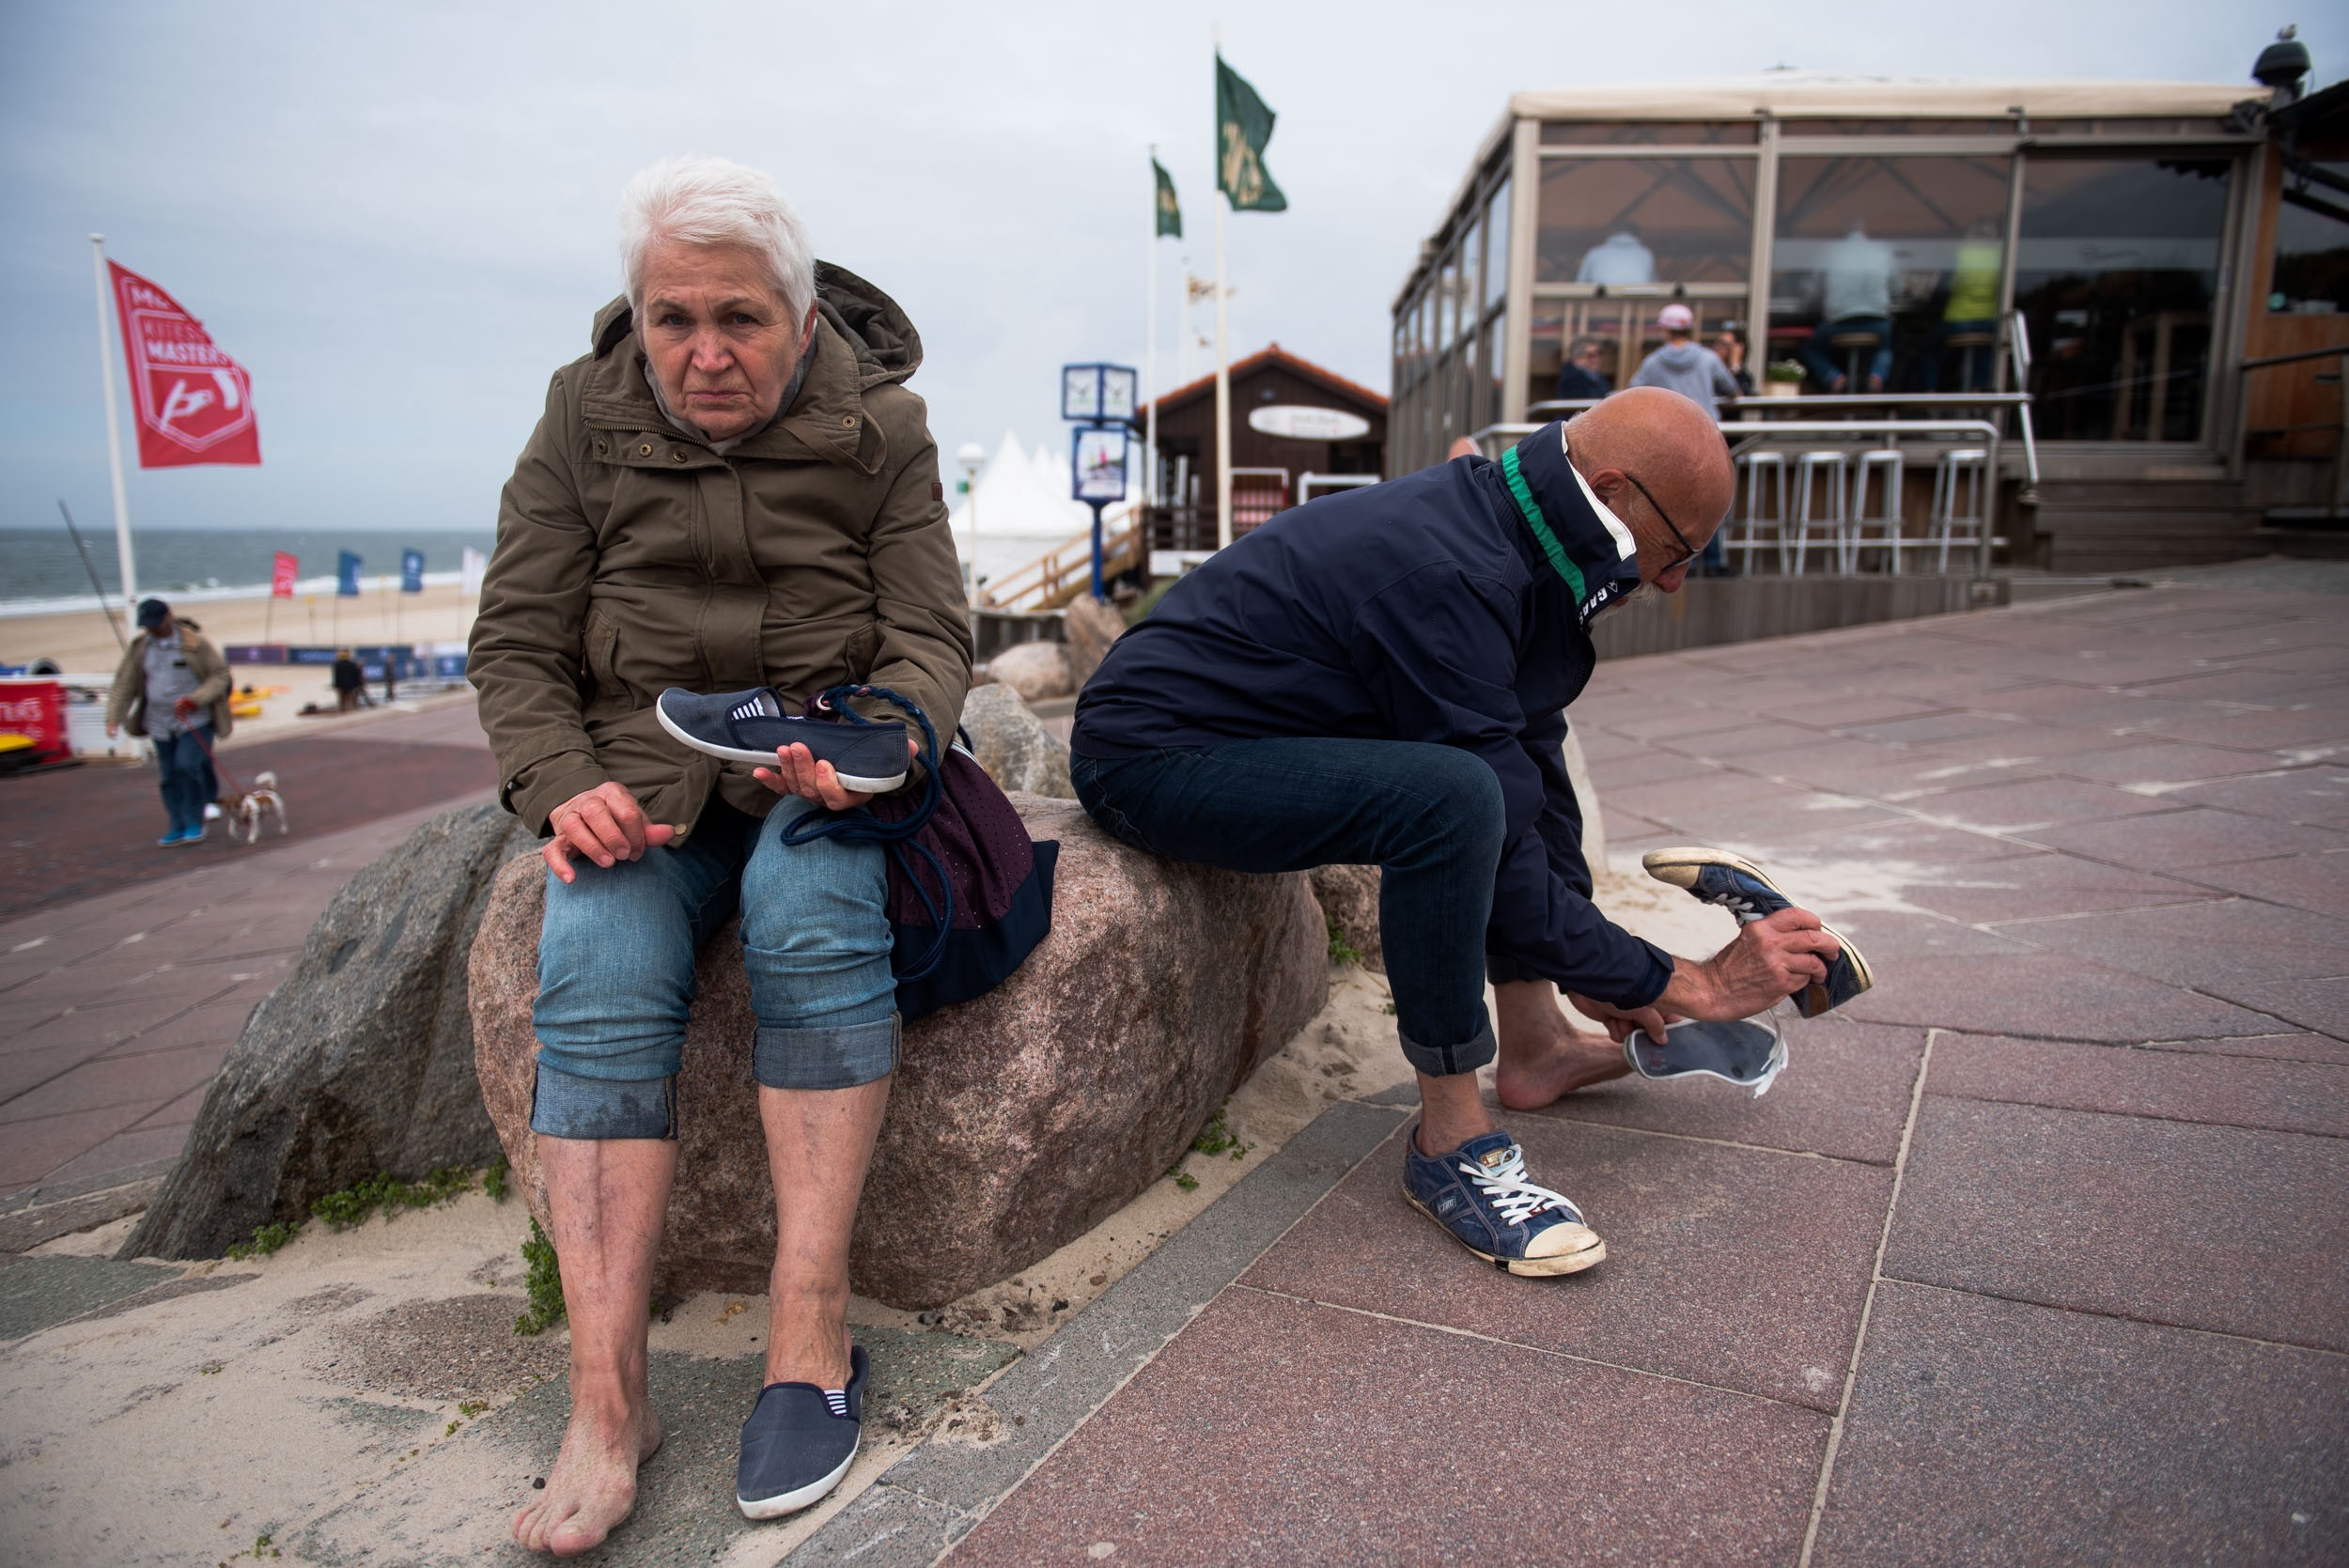 Mom and dad put on their shoes at the end of the week's final beach walk. Westerland, Germany, May 27, 2019.